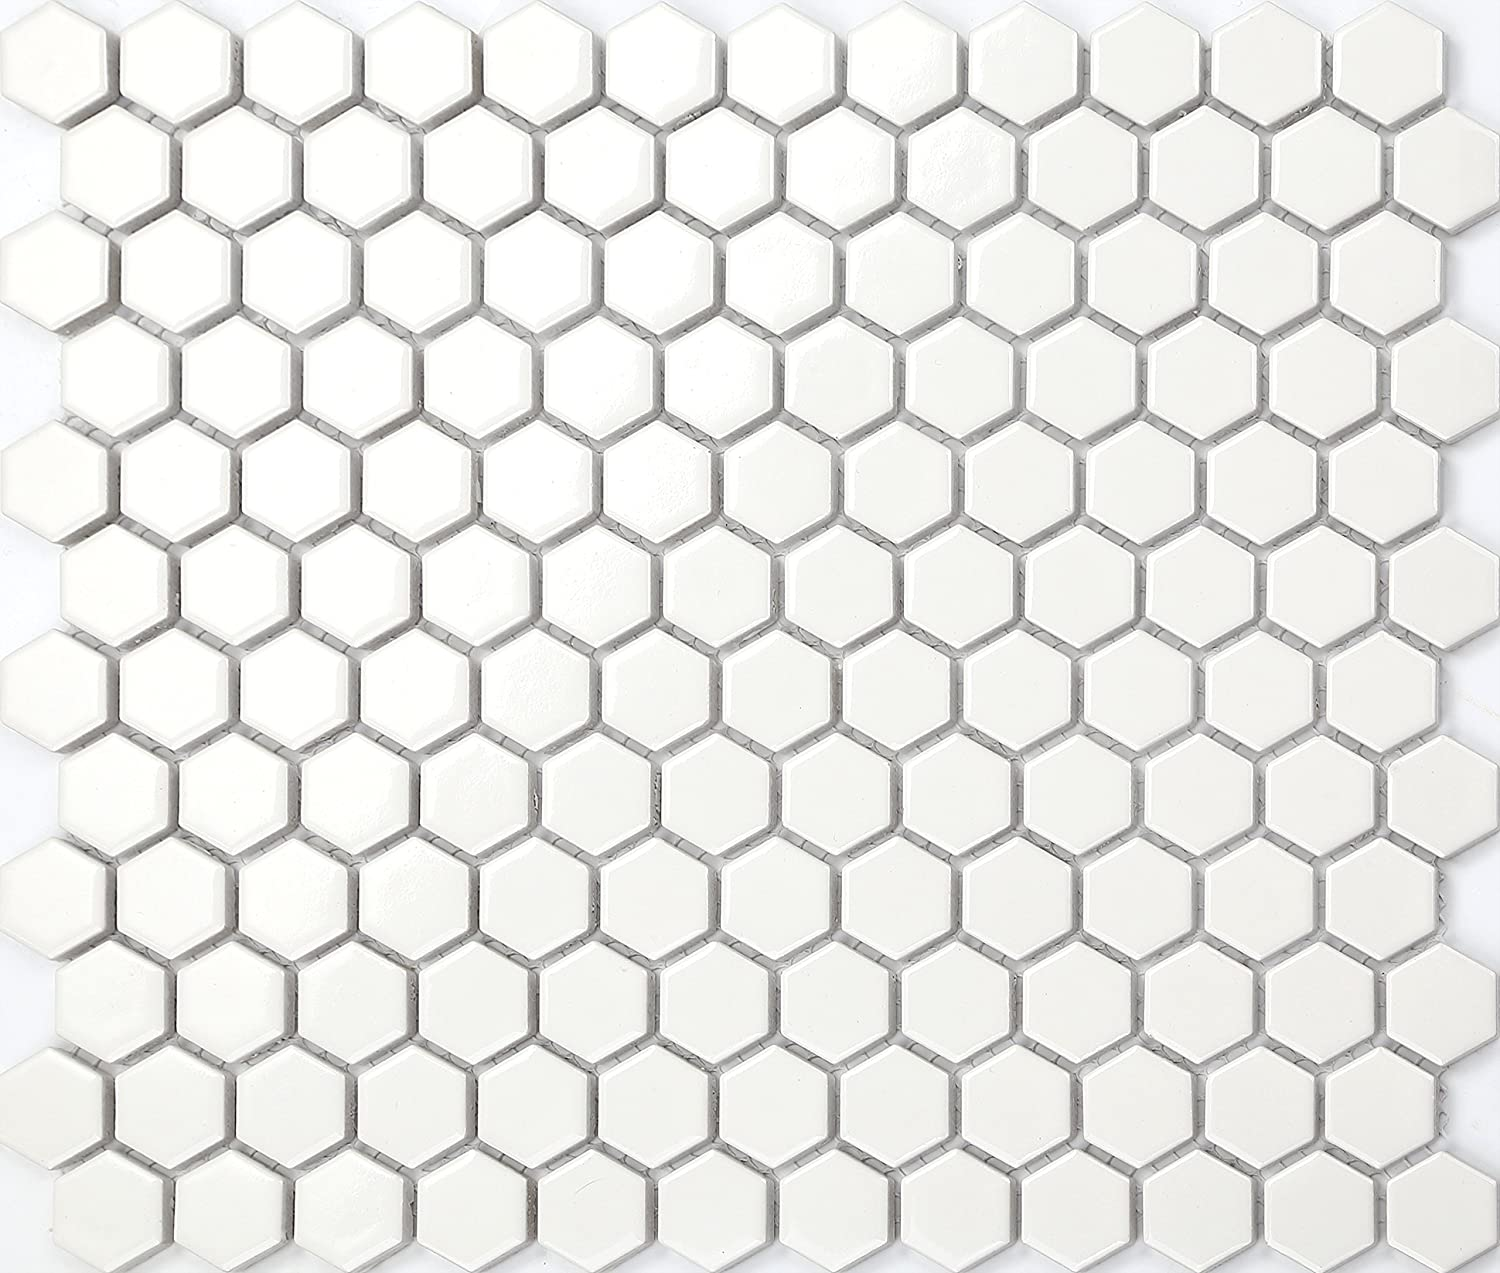 1 qm Carrelage mosaï que en cé ramique. Blanc Forme d'hexagone. Les feuilles entiè res de carreaux mesurent 26cm x 30cm (MT0089 m2) Finition polie, surface brillante GTDE